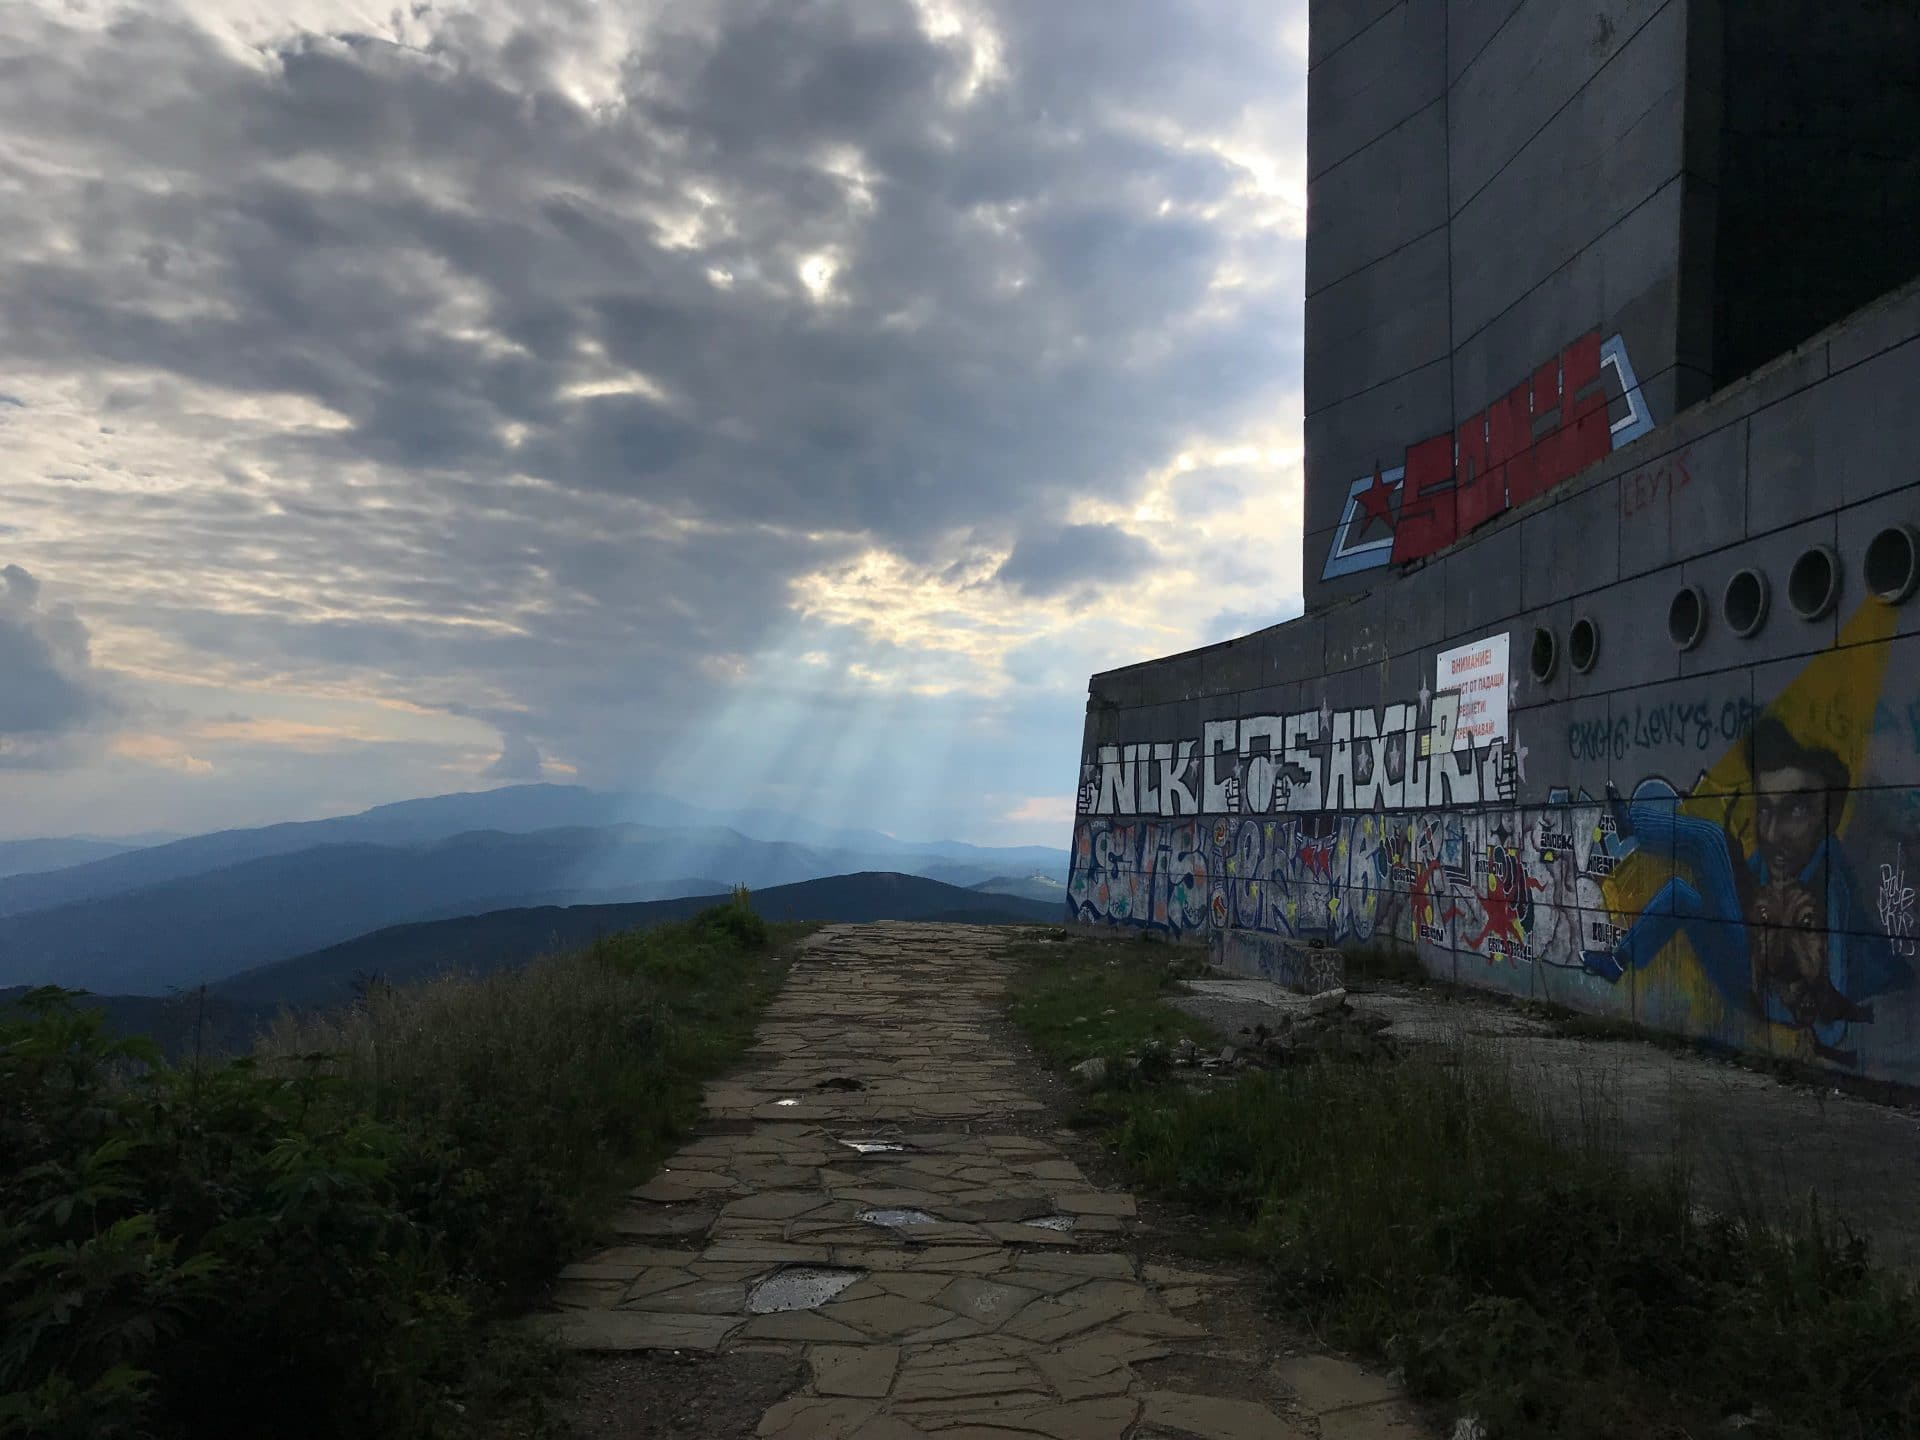 buzludzha monument from sofia how to get there